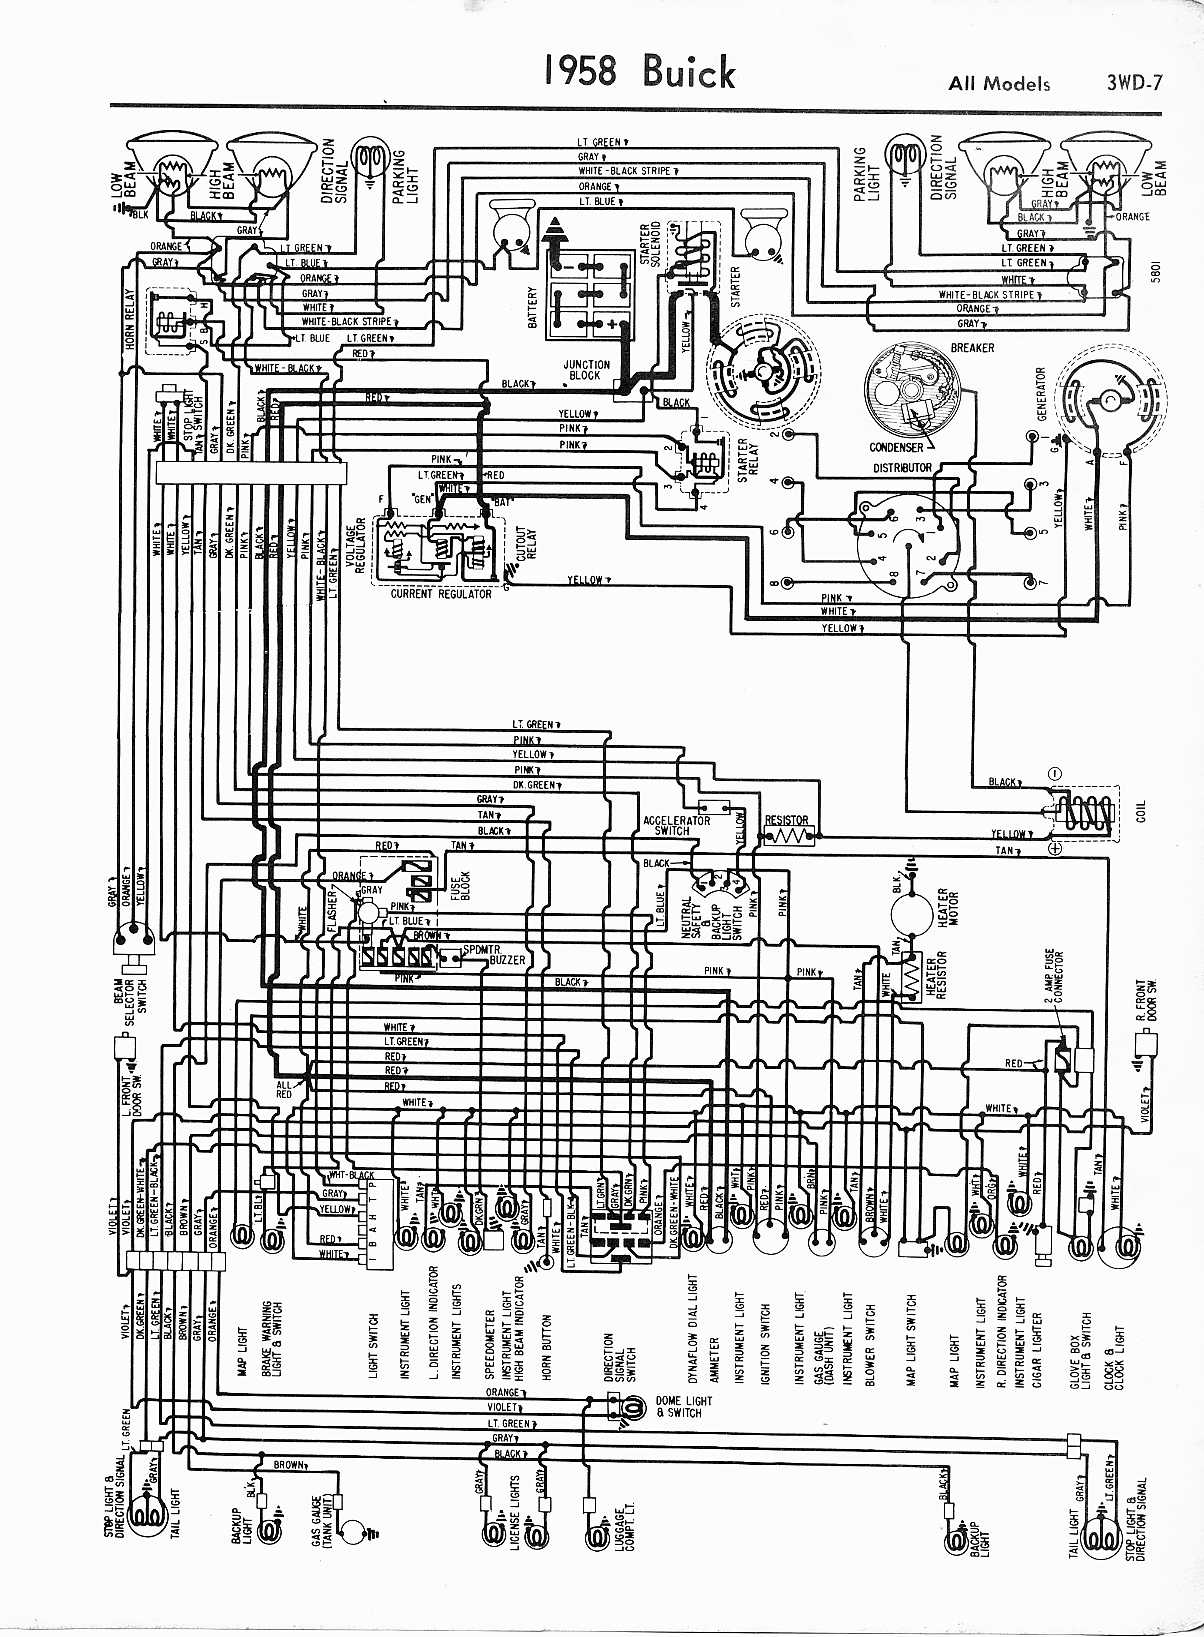 wiring diagram for 1960 buick all models wire data u2022 rh coller site 96 Buick LeSabre Wiring-Diagram Buick Stereo Wiring Diagram